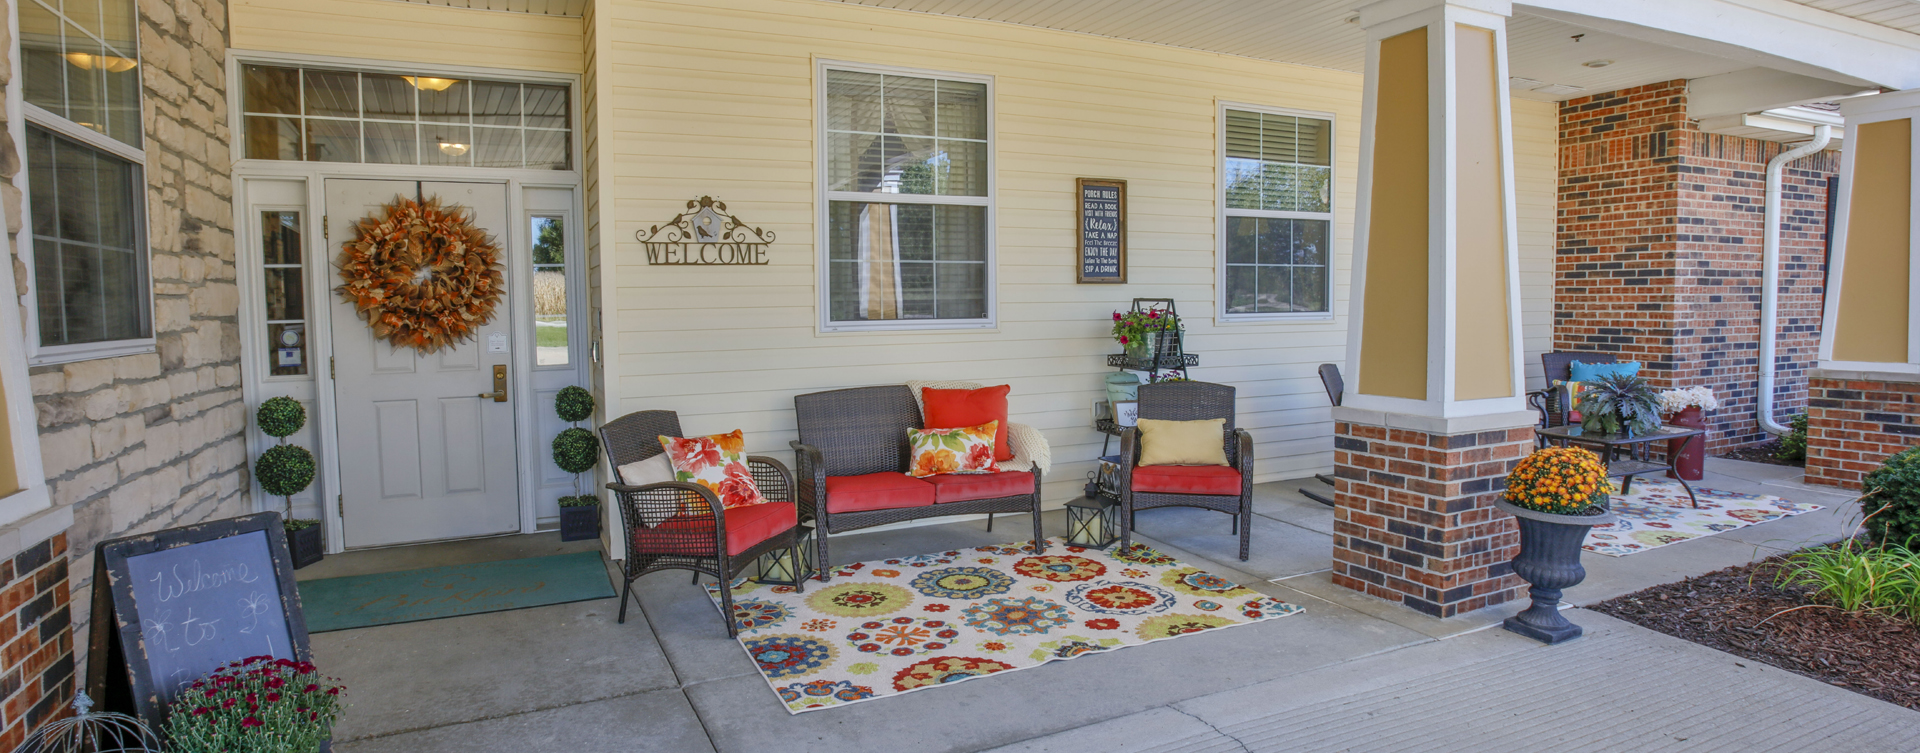 Enjoy conversations with friends on the porch at Bickford of Champaign